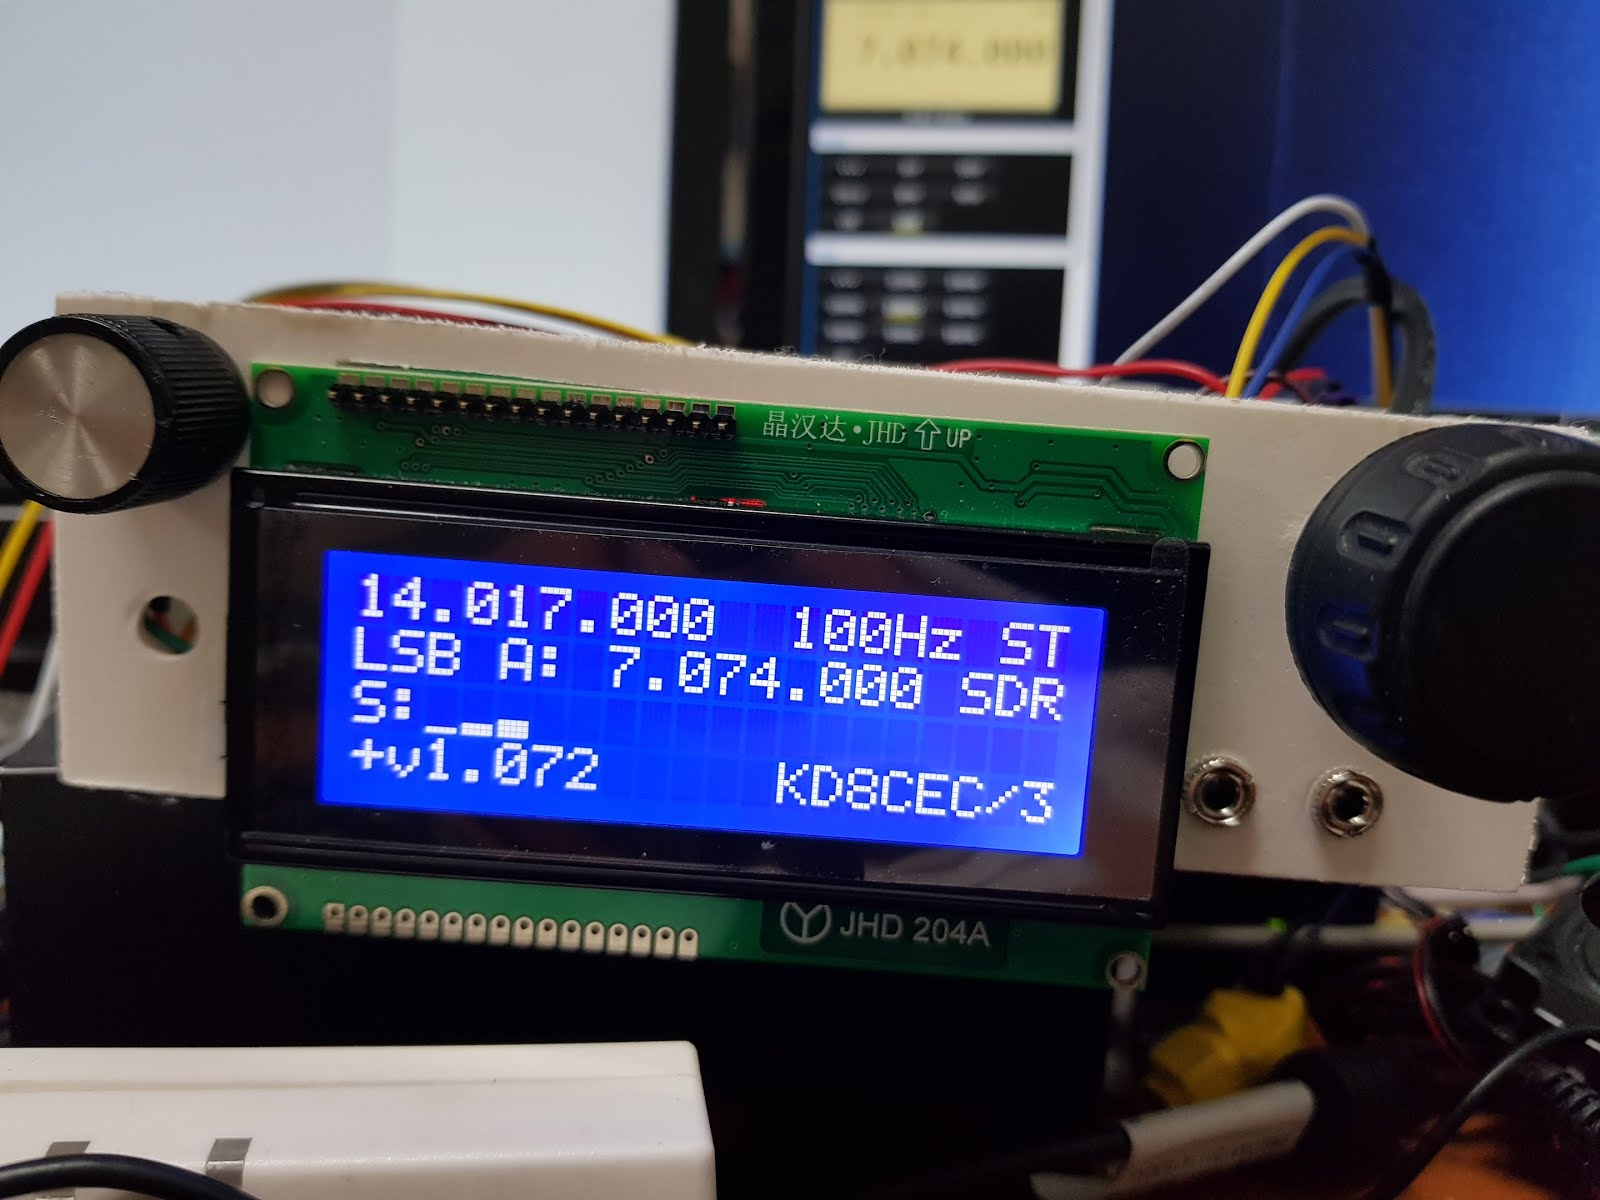 Using HDSDR with HF Transceiver (Modified - Add Videos) (Examples of